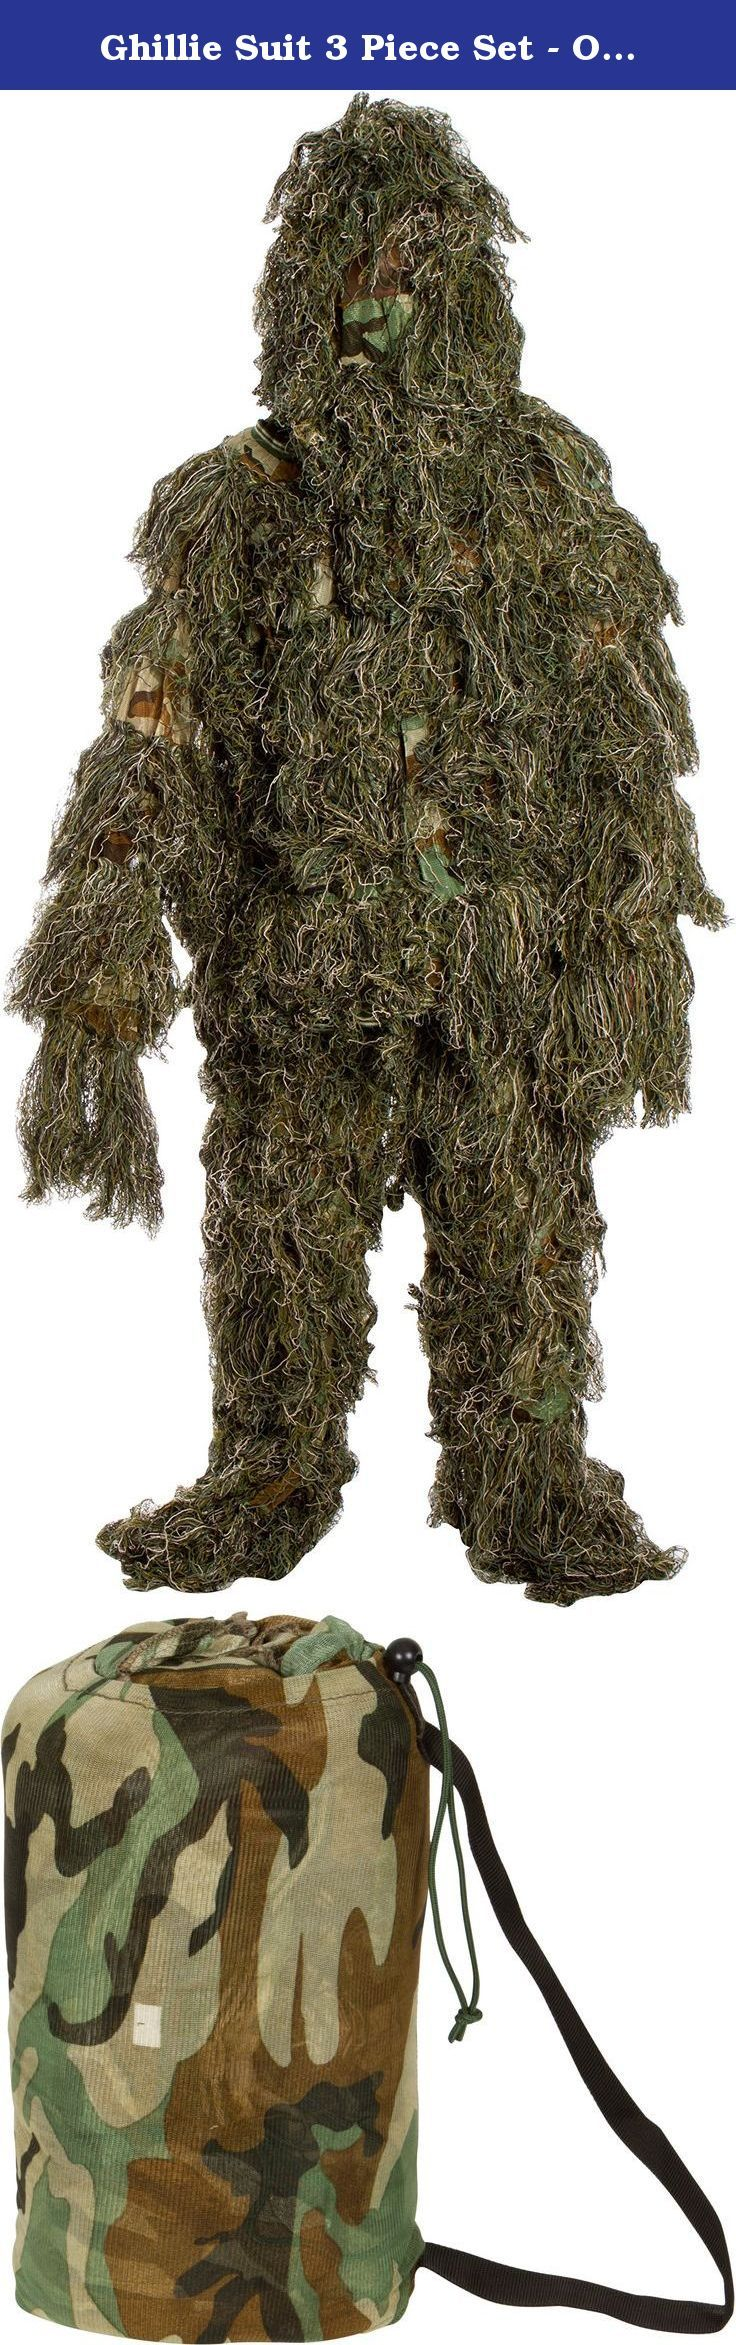 """Ghillie Suit 3 Piece Set - One Size Fits All Teens By Modern Warrior. Ghillie Suit Woodland and Forest Camouflage Tactical Gear. Our ghillie suits are top quality and will help you blend into any environment. Our 3 piece child suit fits teenagers 14 and up and is fairly adjustable. The suit pants are adjustable with draw strings. Buy our natural looking, top quality Ghillie Suit today. One size fits all teens. Chest- 16"""", Waist- Up to 30"""", Inseam- 24"""", Sleeve Length- 21"""". By Modern Warrior ."""